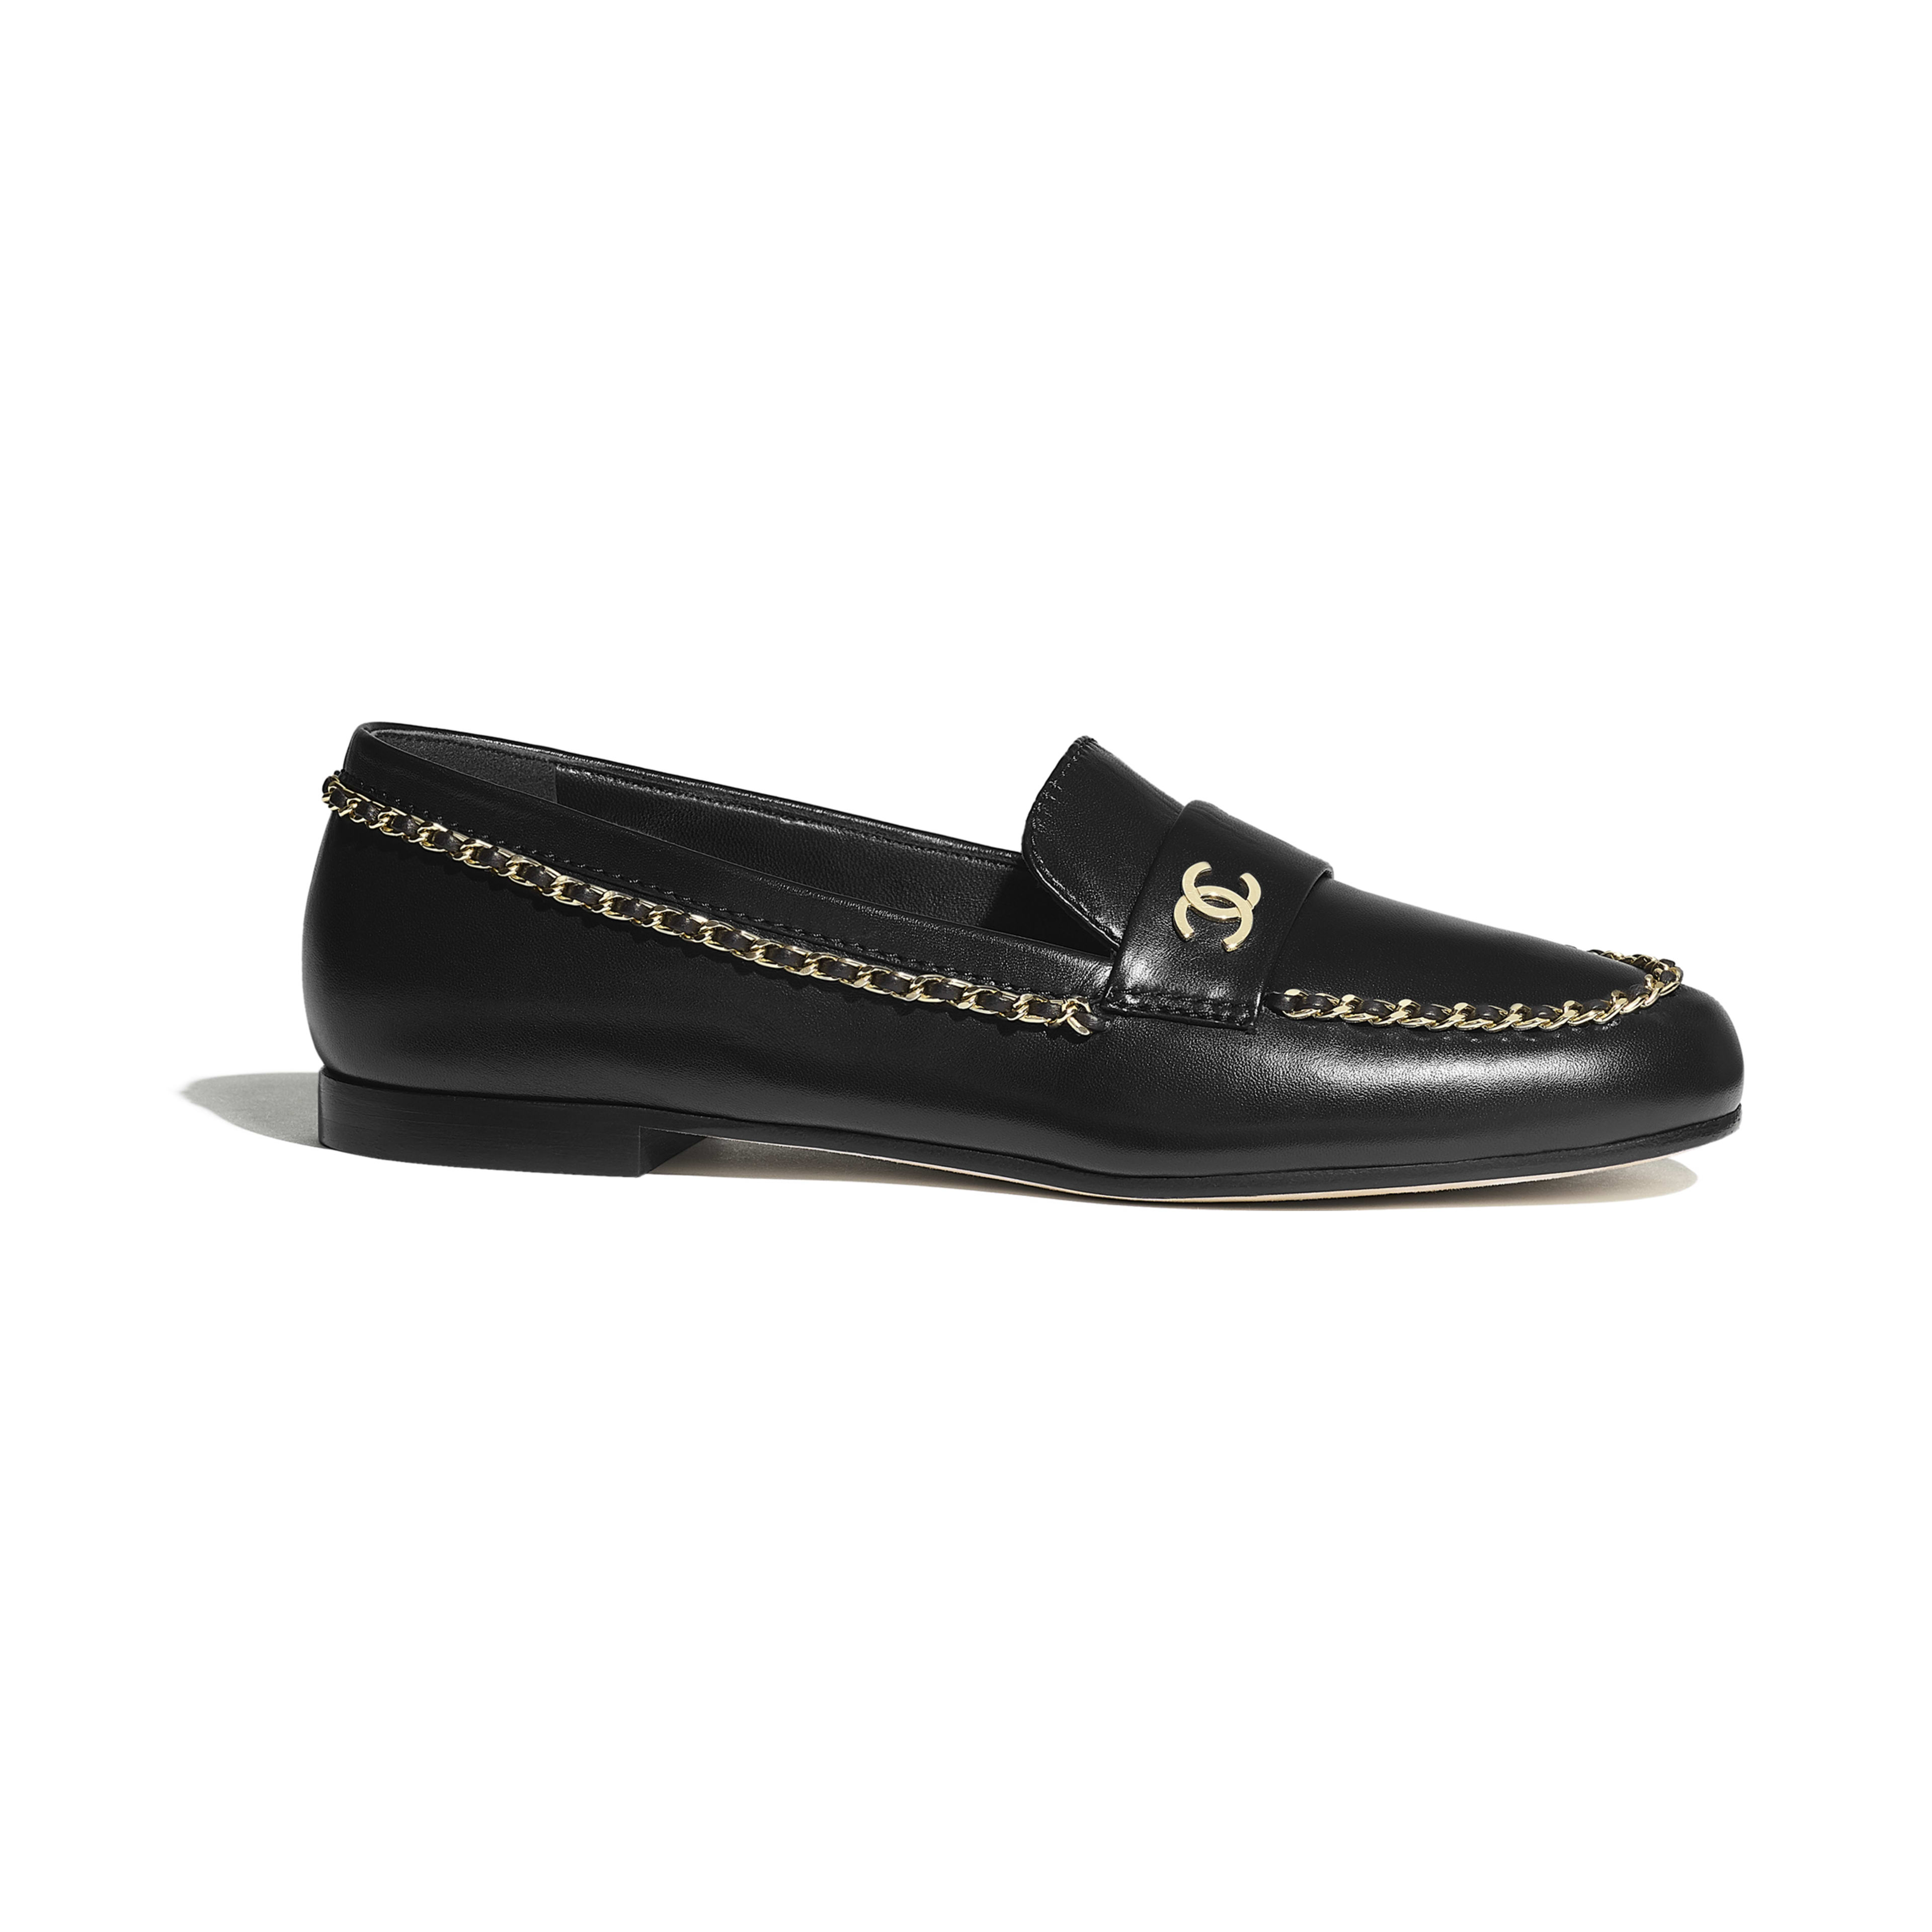 Loafers - Black - Lambskin - Default view - see full sized version